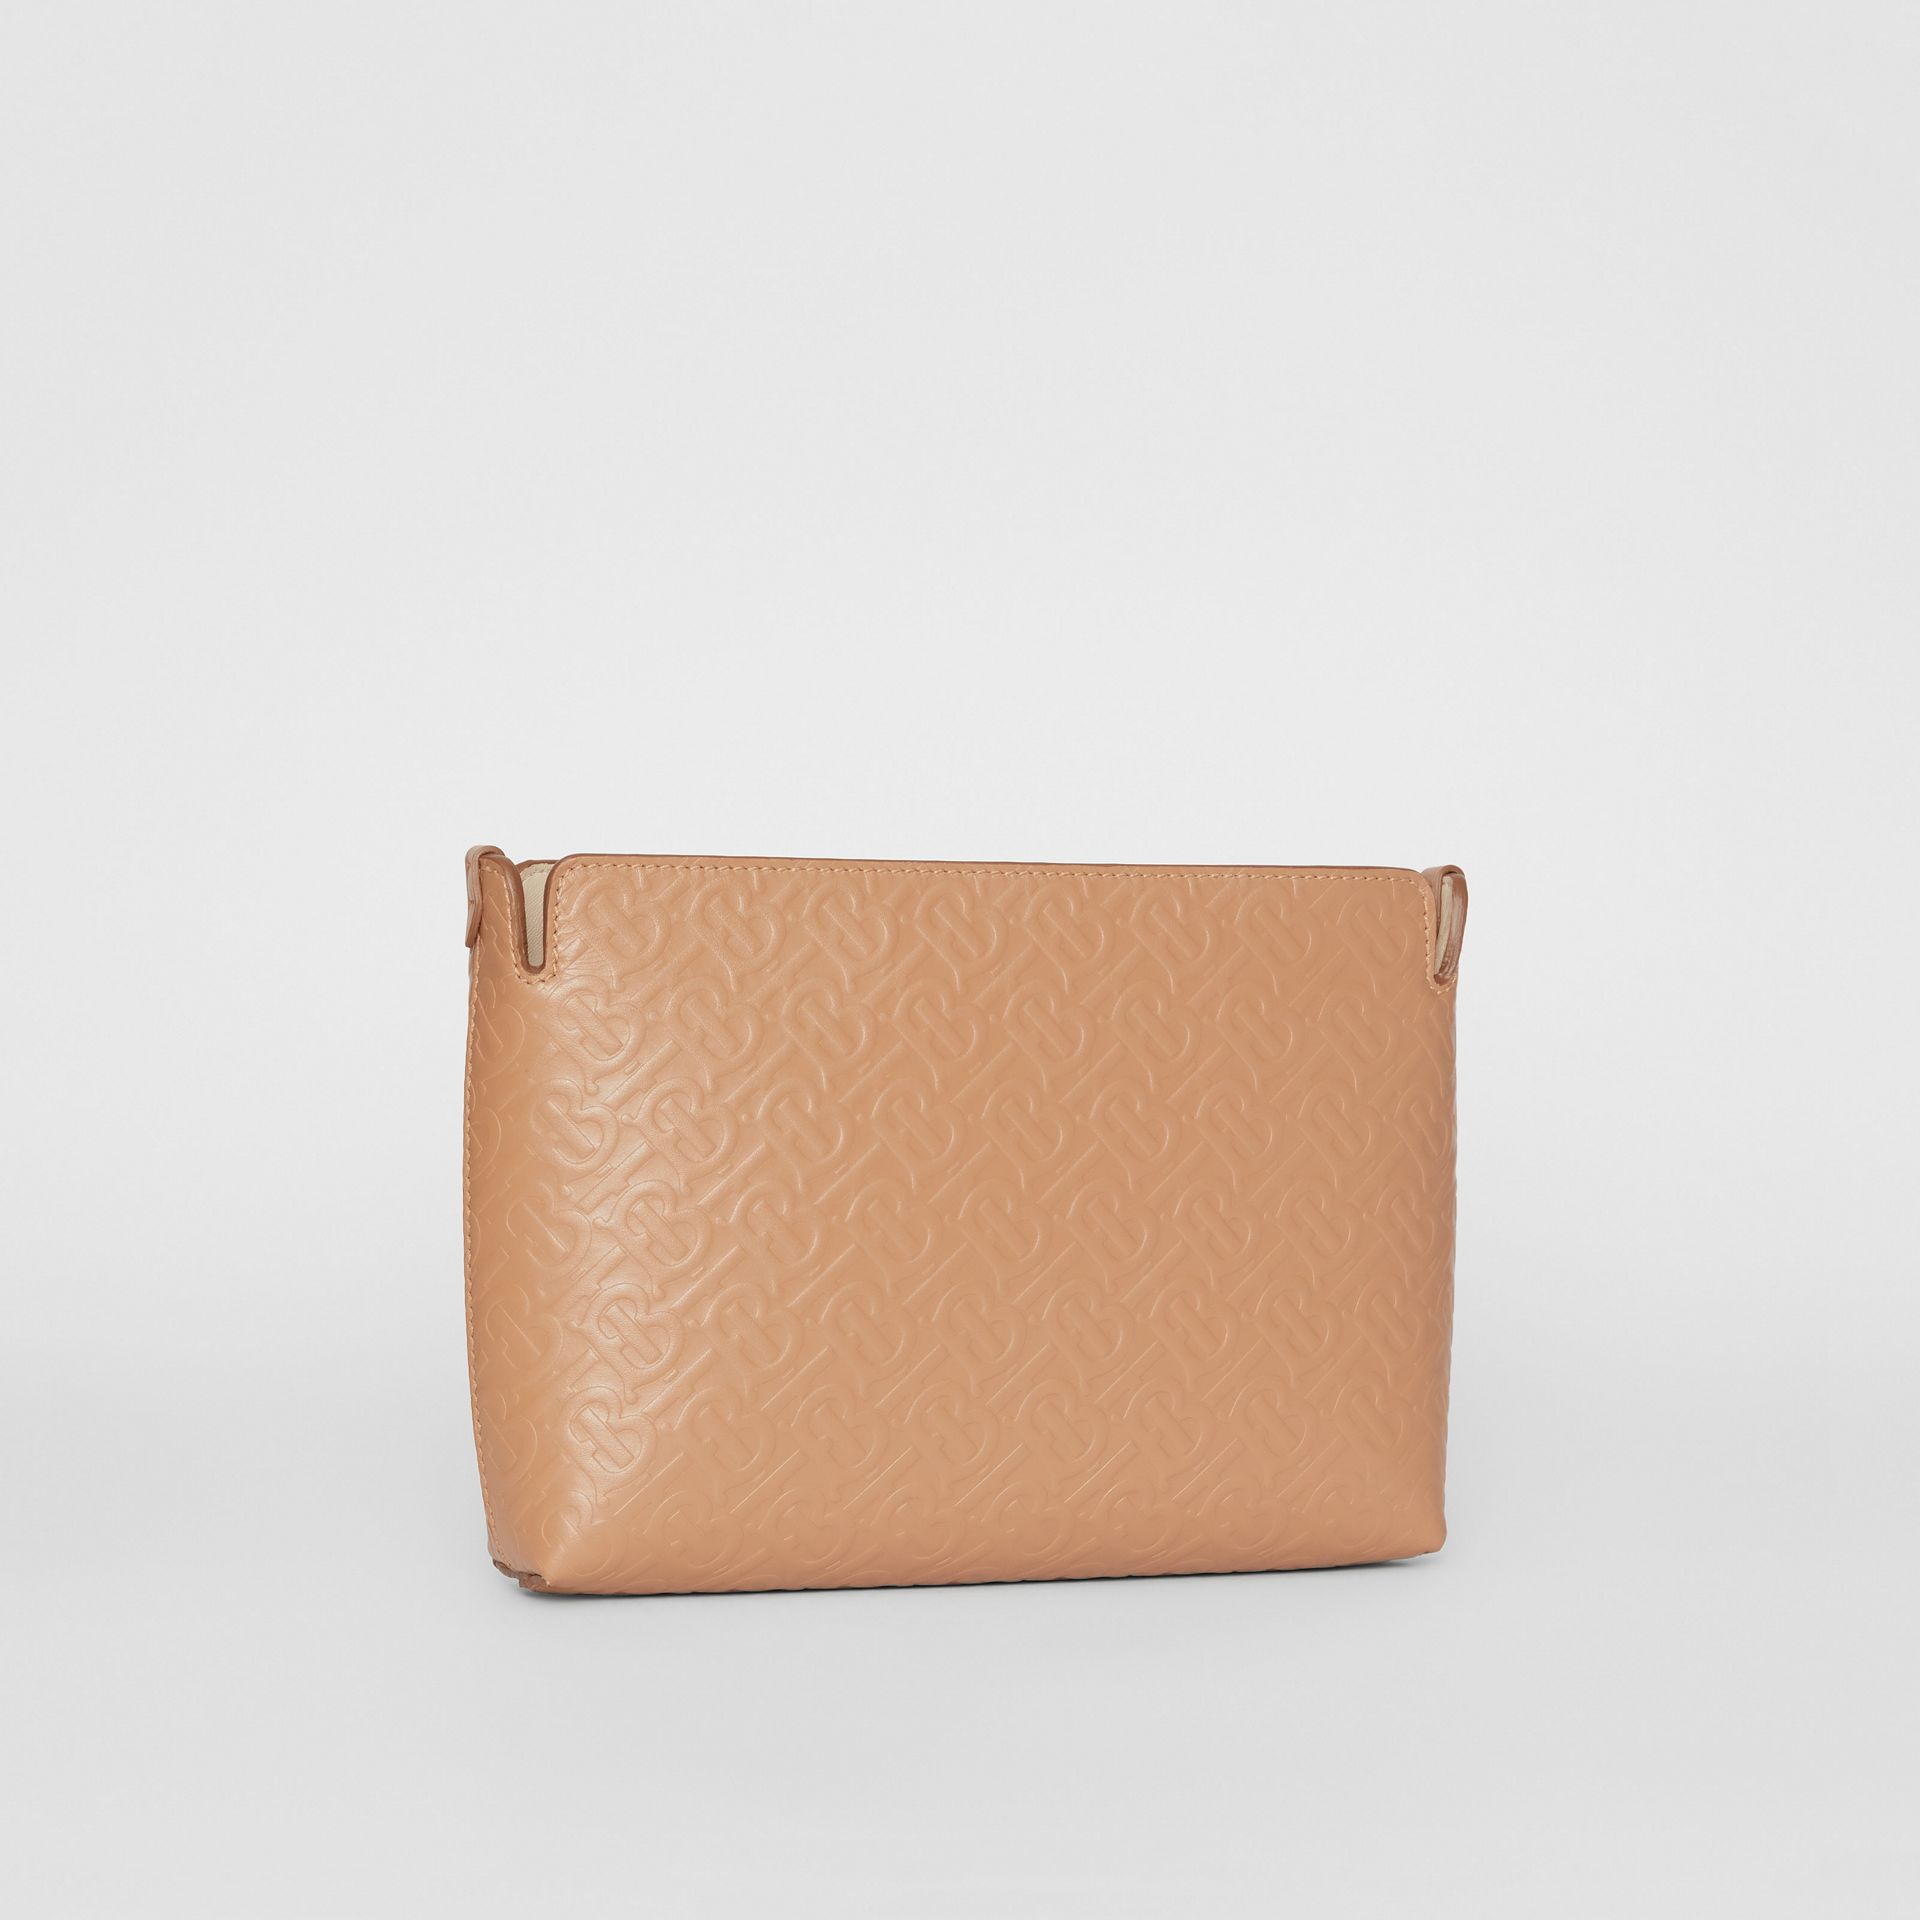 Clutch moyen en cuir Monogram (Camel Clair) - Femme | Burberry - photo de la galerie 5